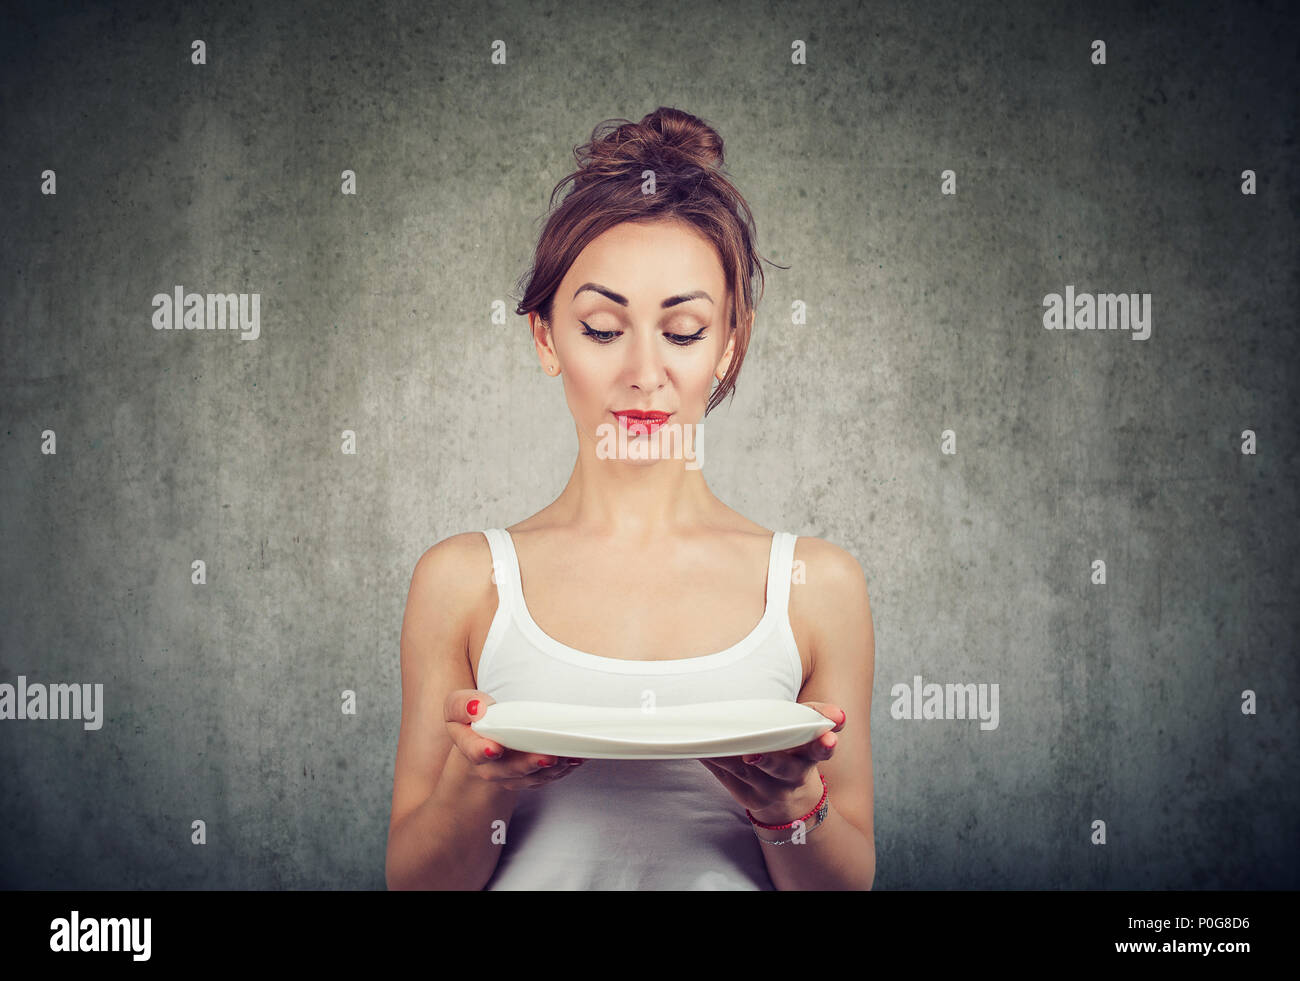 Young skinny girl holding empty plate and looking doubtful with diet restrictions standing on gray - Stock Image